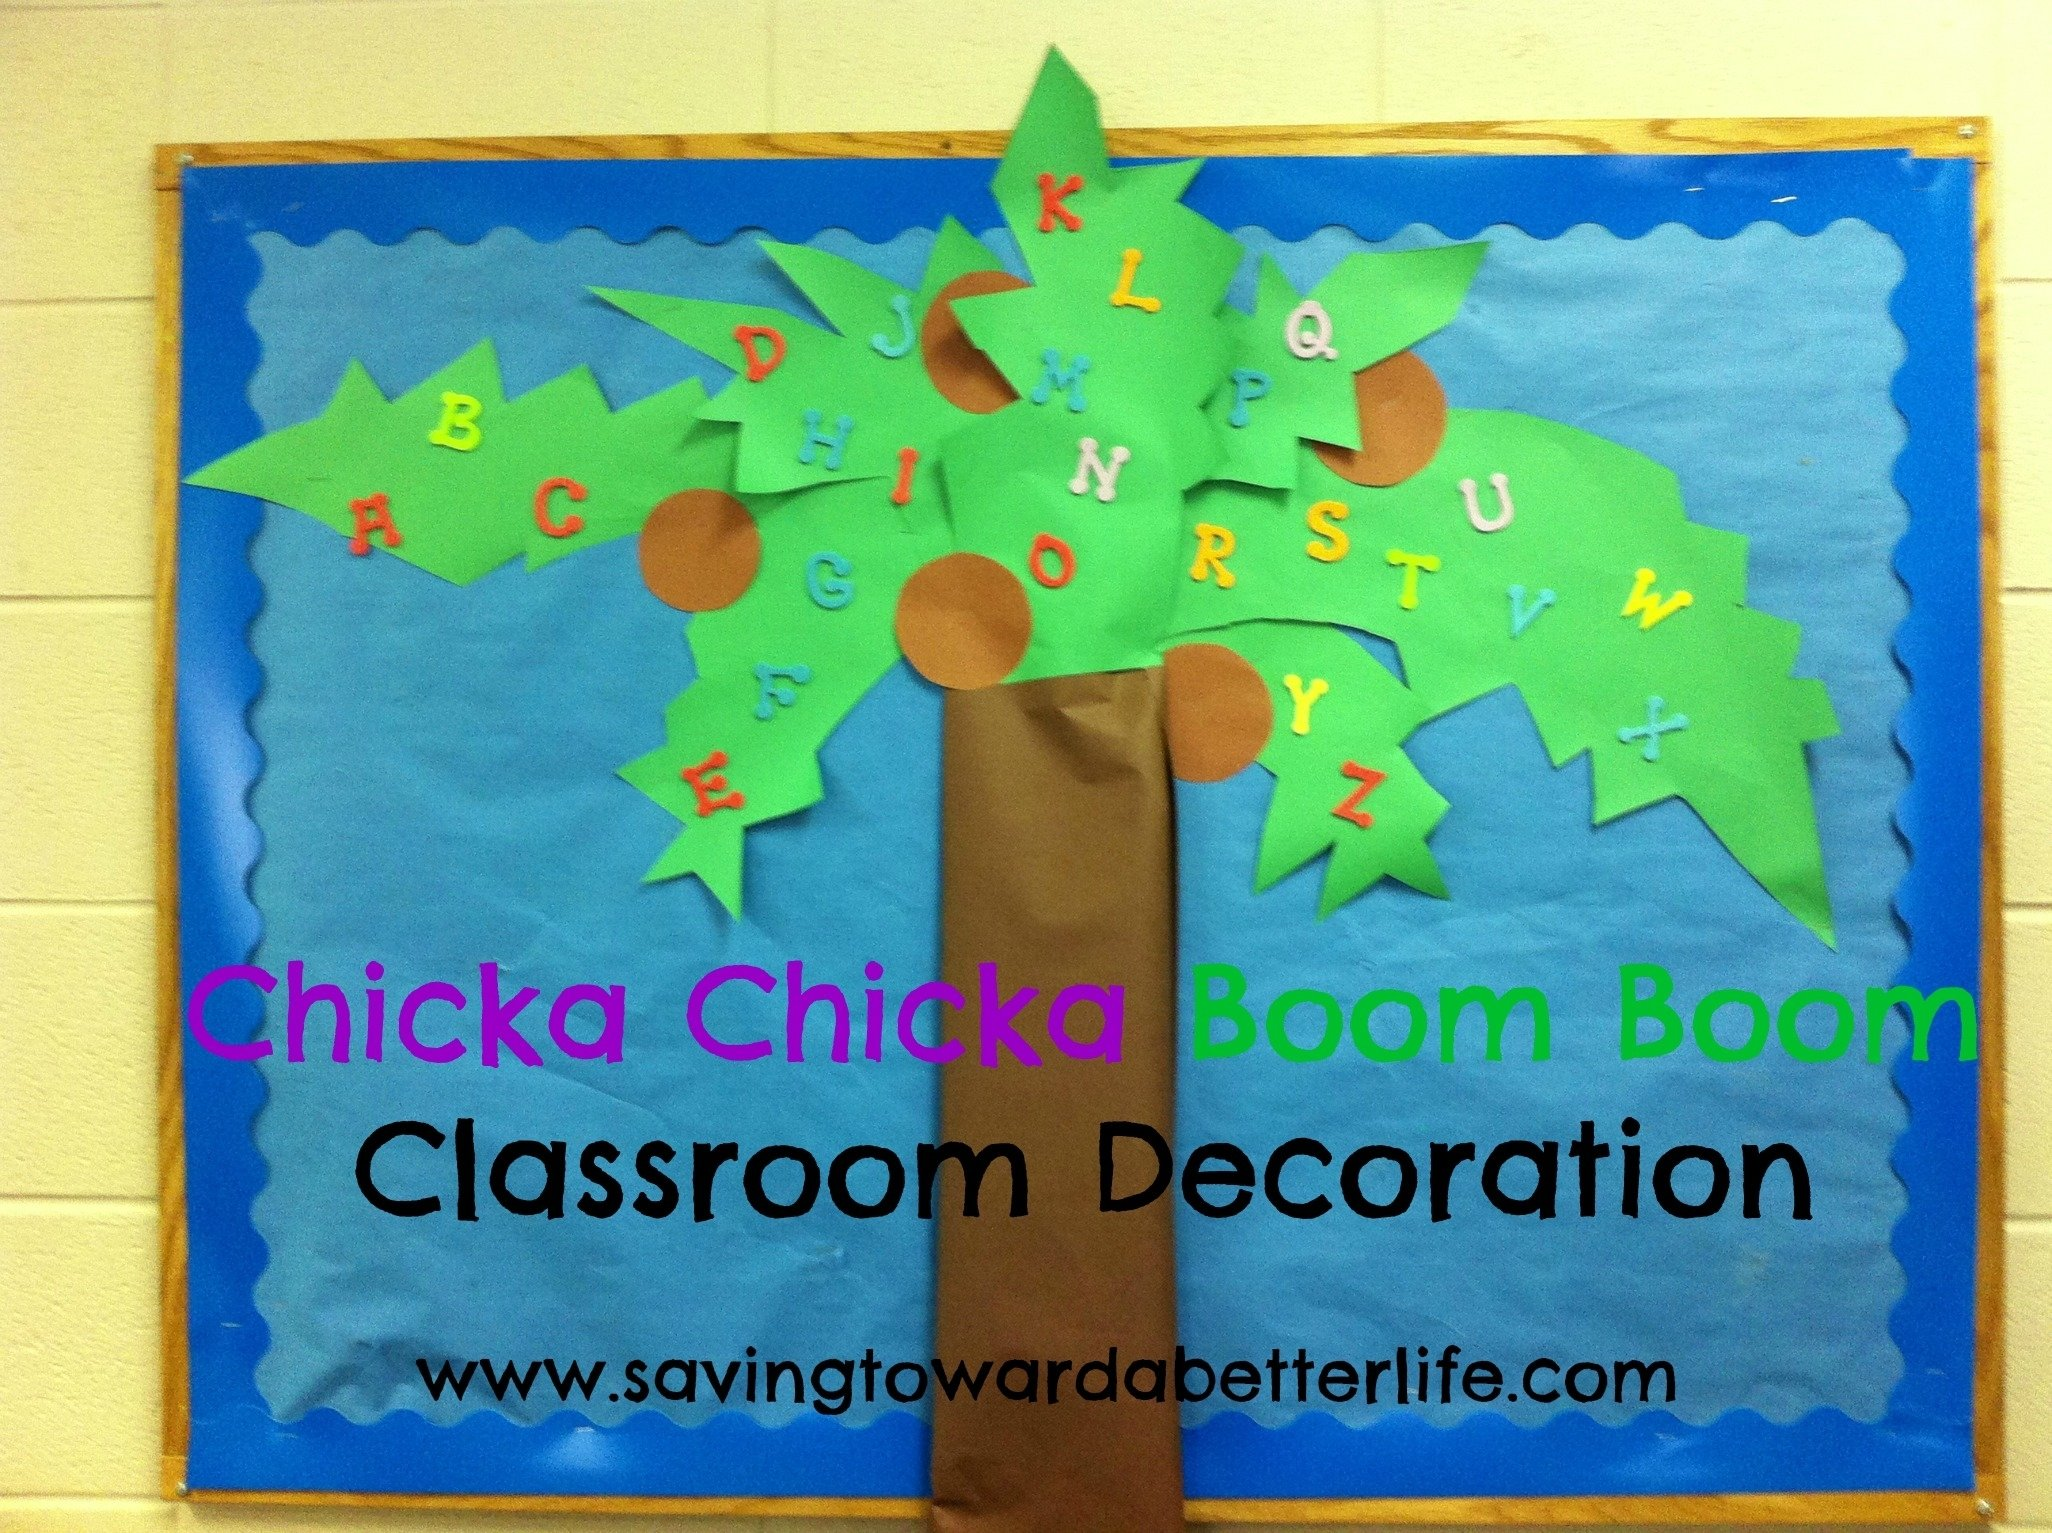 10 Best Chicka Chicka Boom Boom Bulletin Board Ideas letter learning ideas with chicka chicka boom boom saving toward a 2020